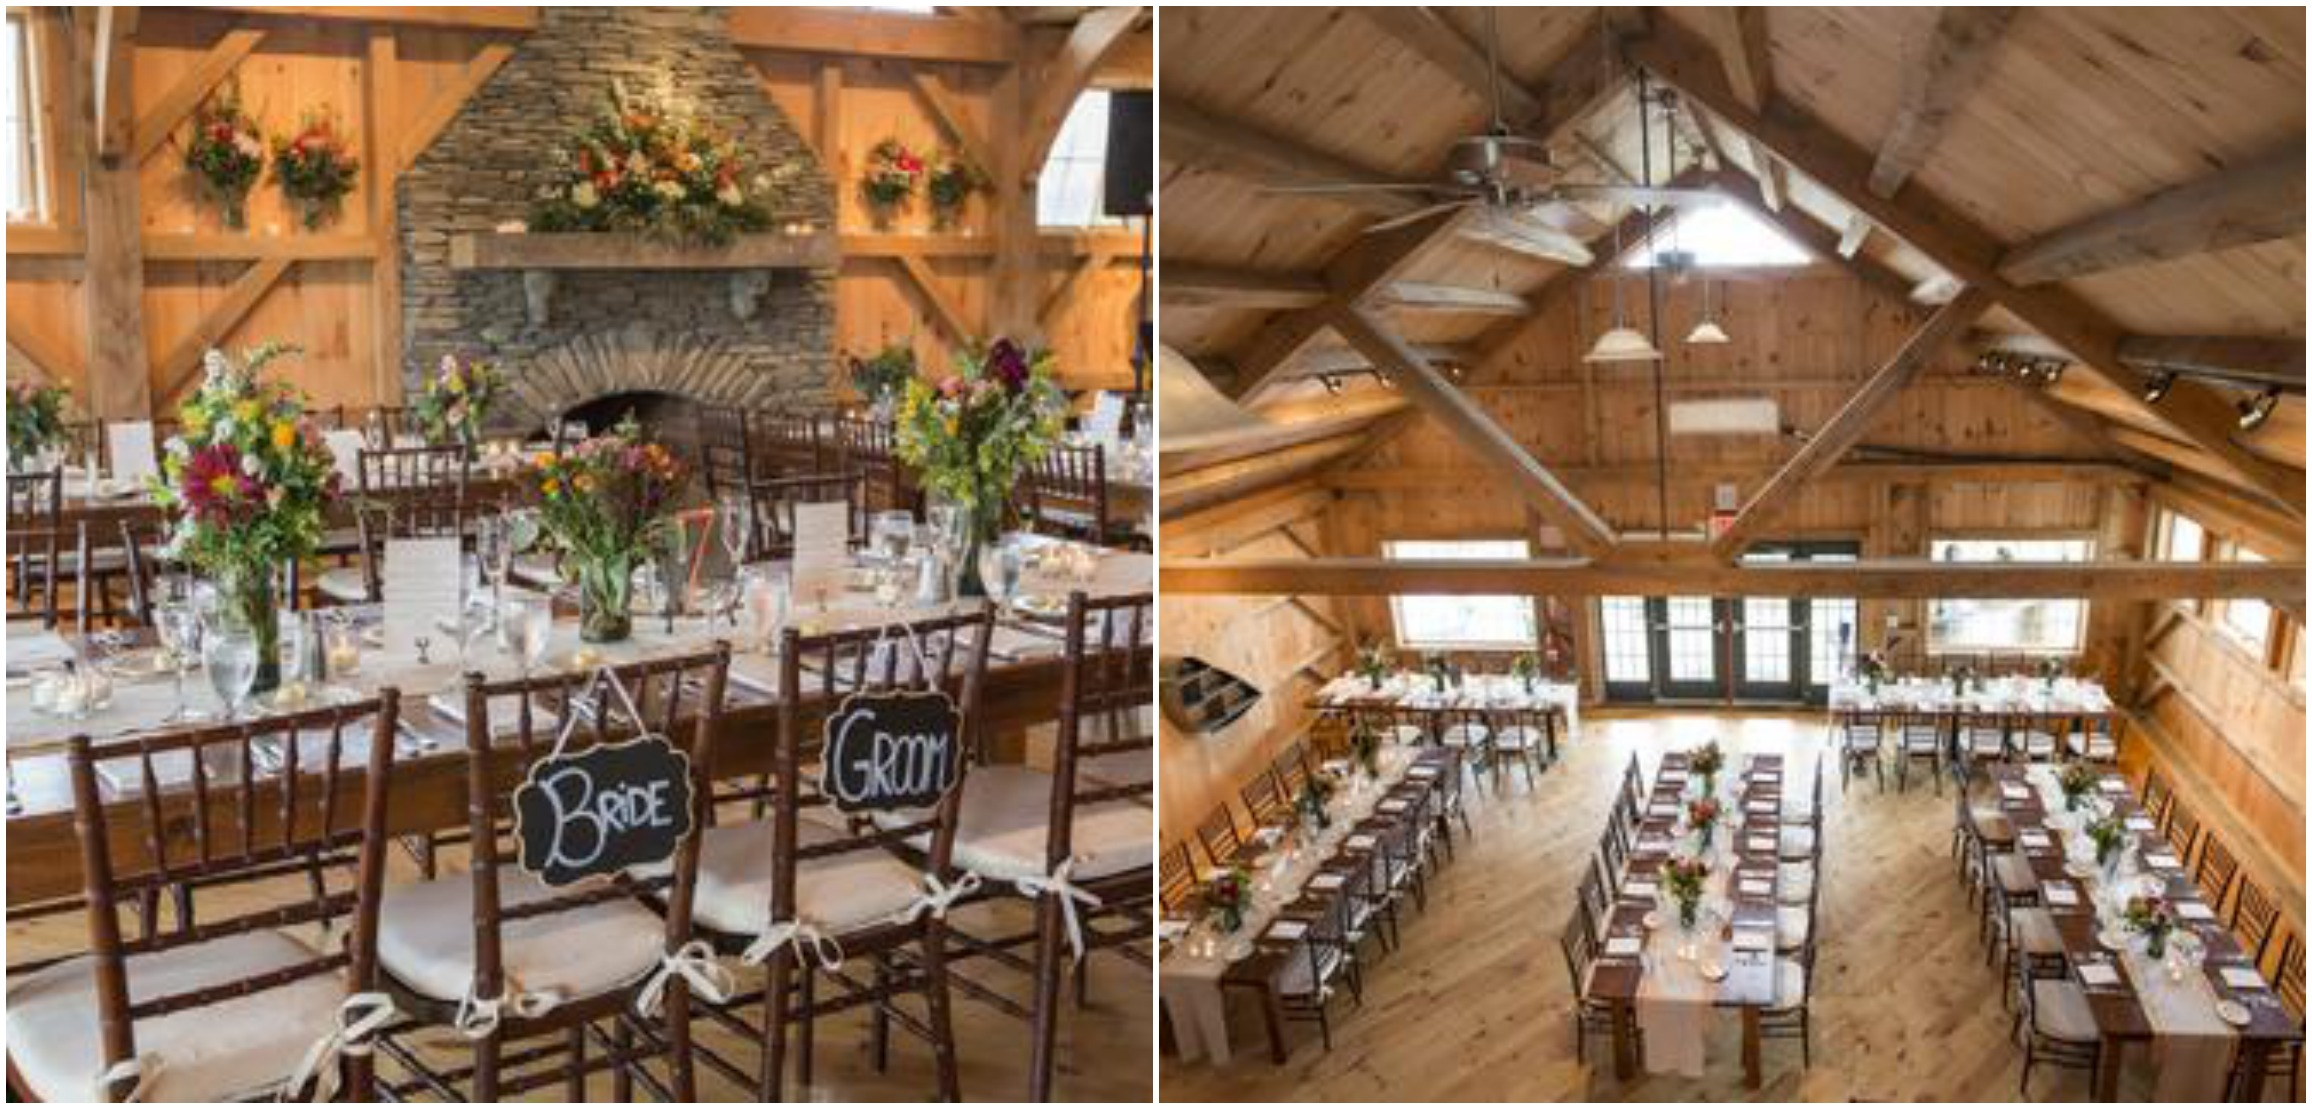 Top 10 rustic wedding venues in new england rustic for Top 10 wedding venues